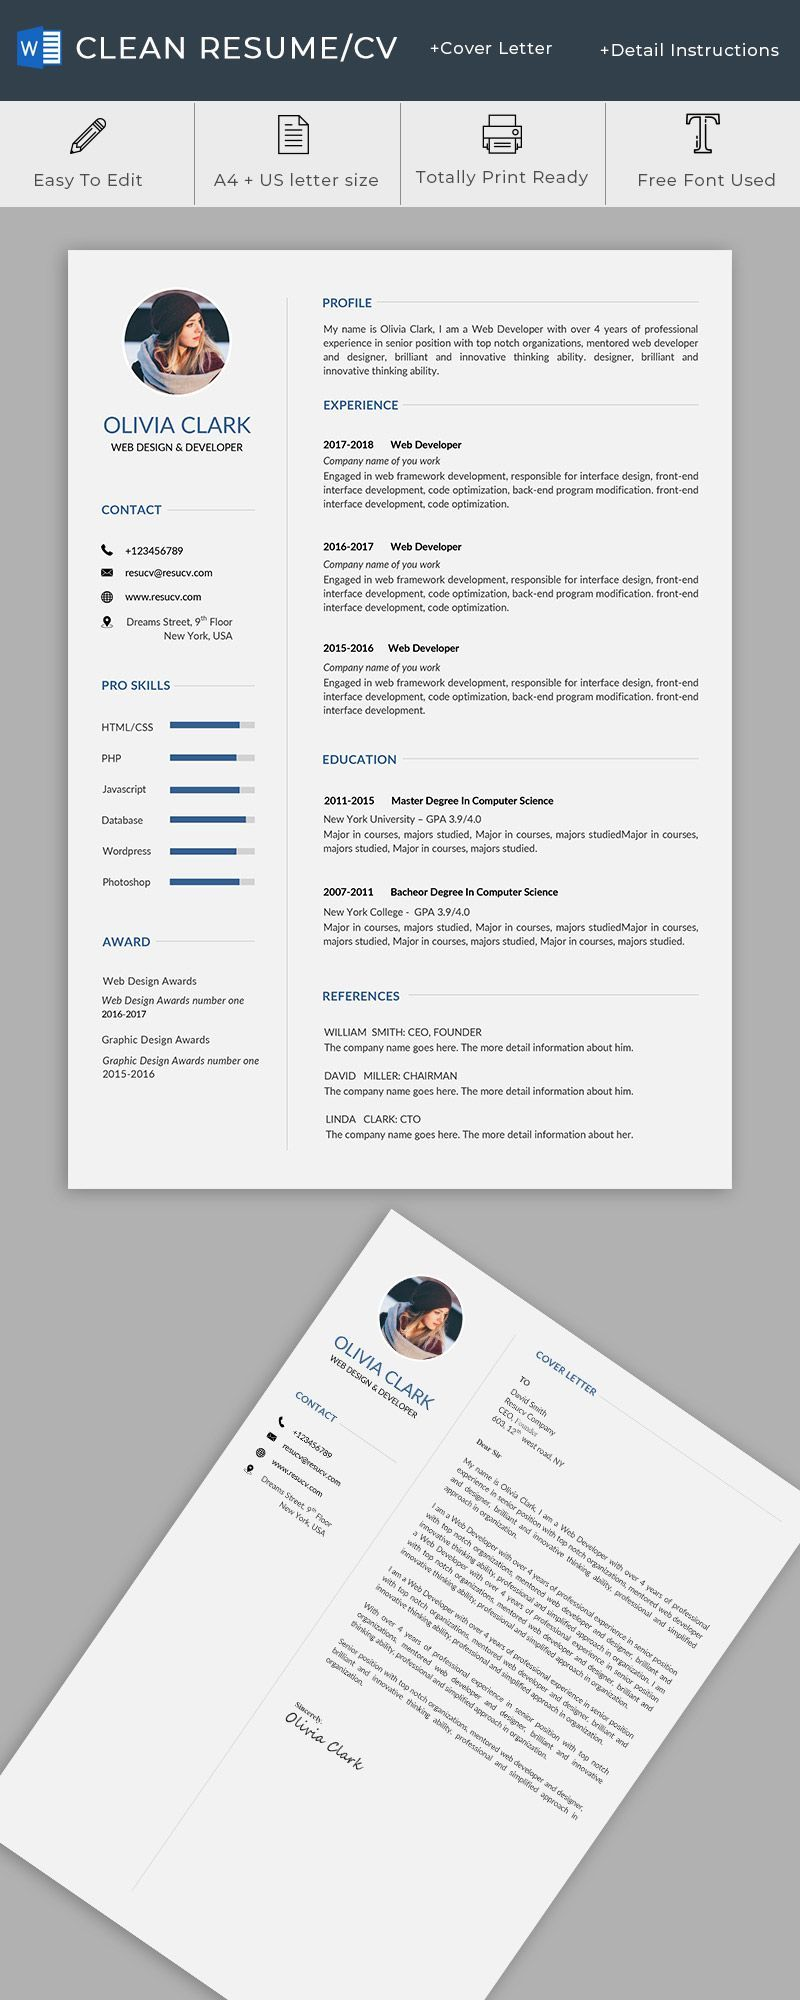 A Clean Resume Cv Templates For You Resumes Templates Doctor Resume Templates Web Designer Resume Business Resume Template Resume Design Creative Cv Template